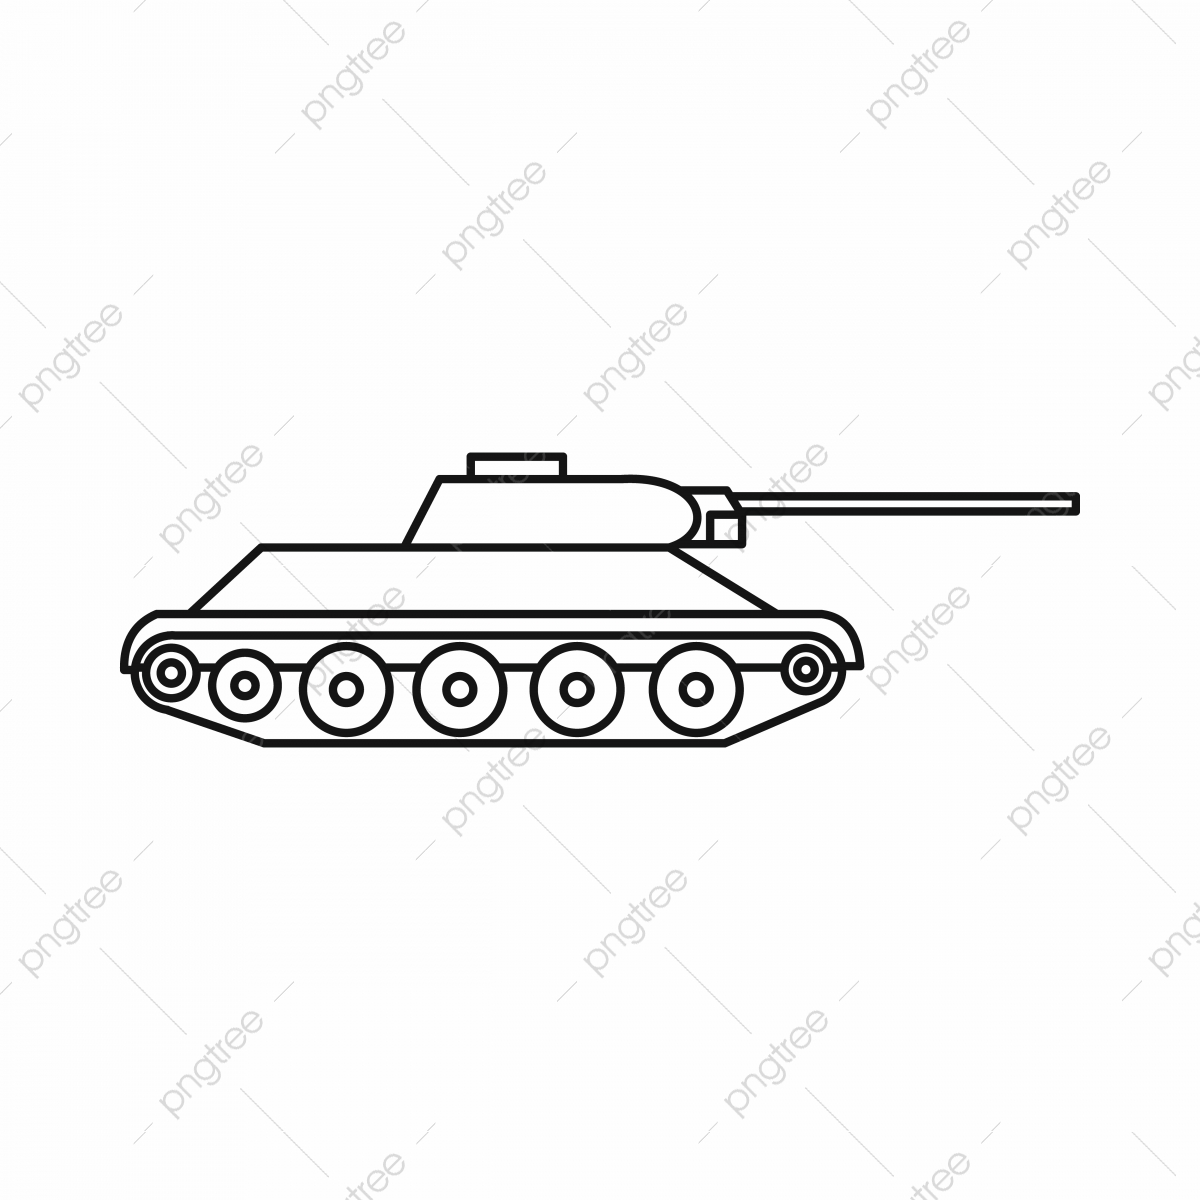 tank icon in outline style style icons tank icons outline icons png and vector with transparent background for free download https pngtree com freepng tank icon in outline style 5105539 html